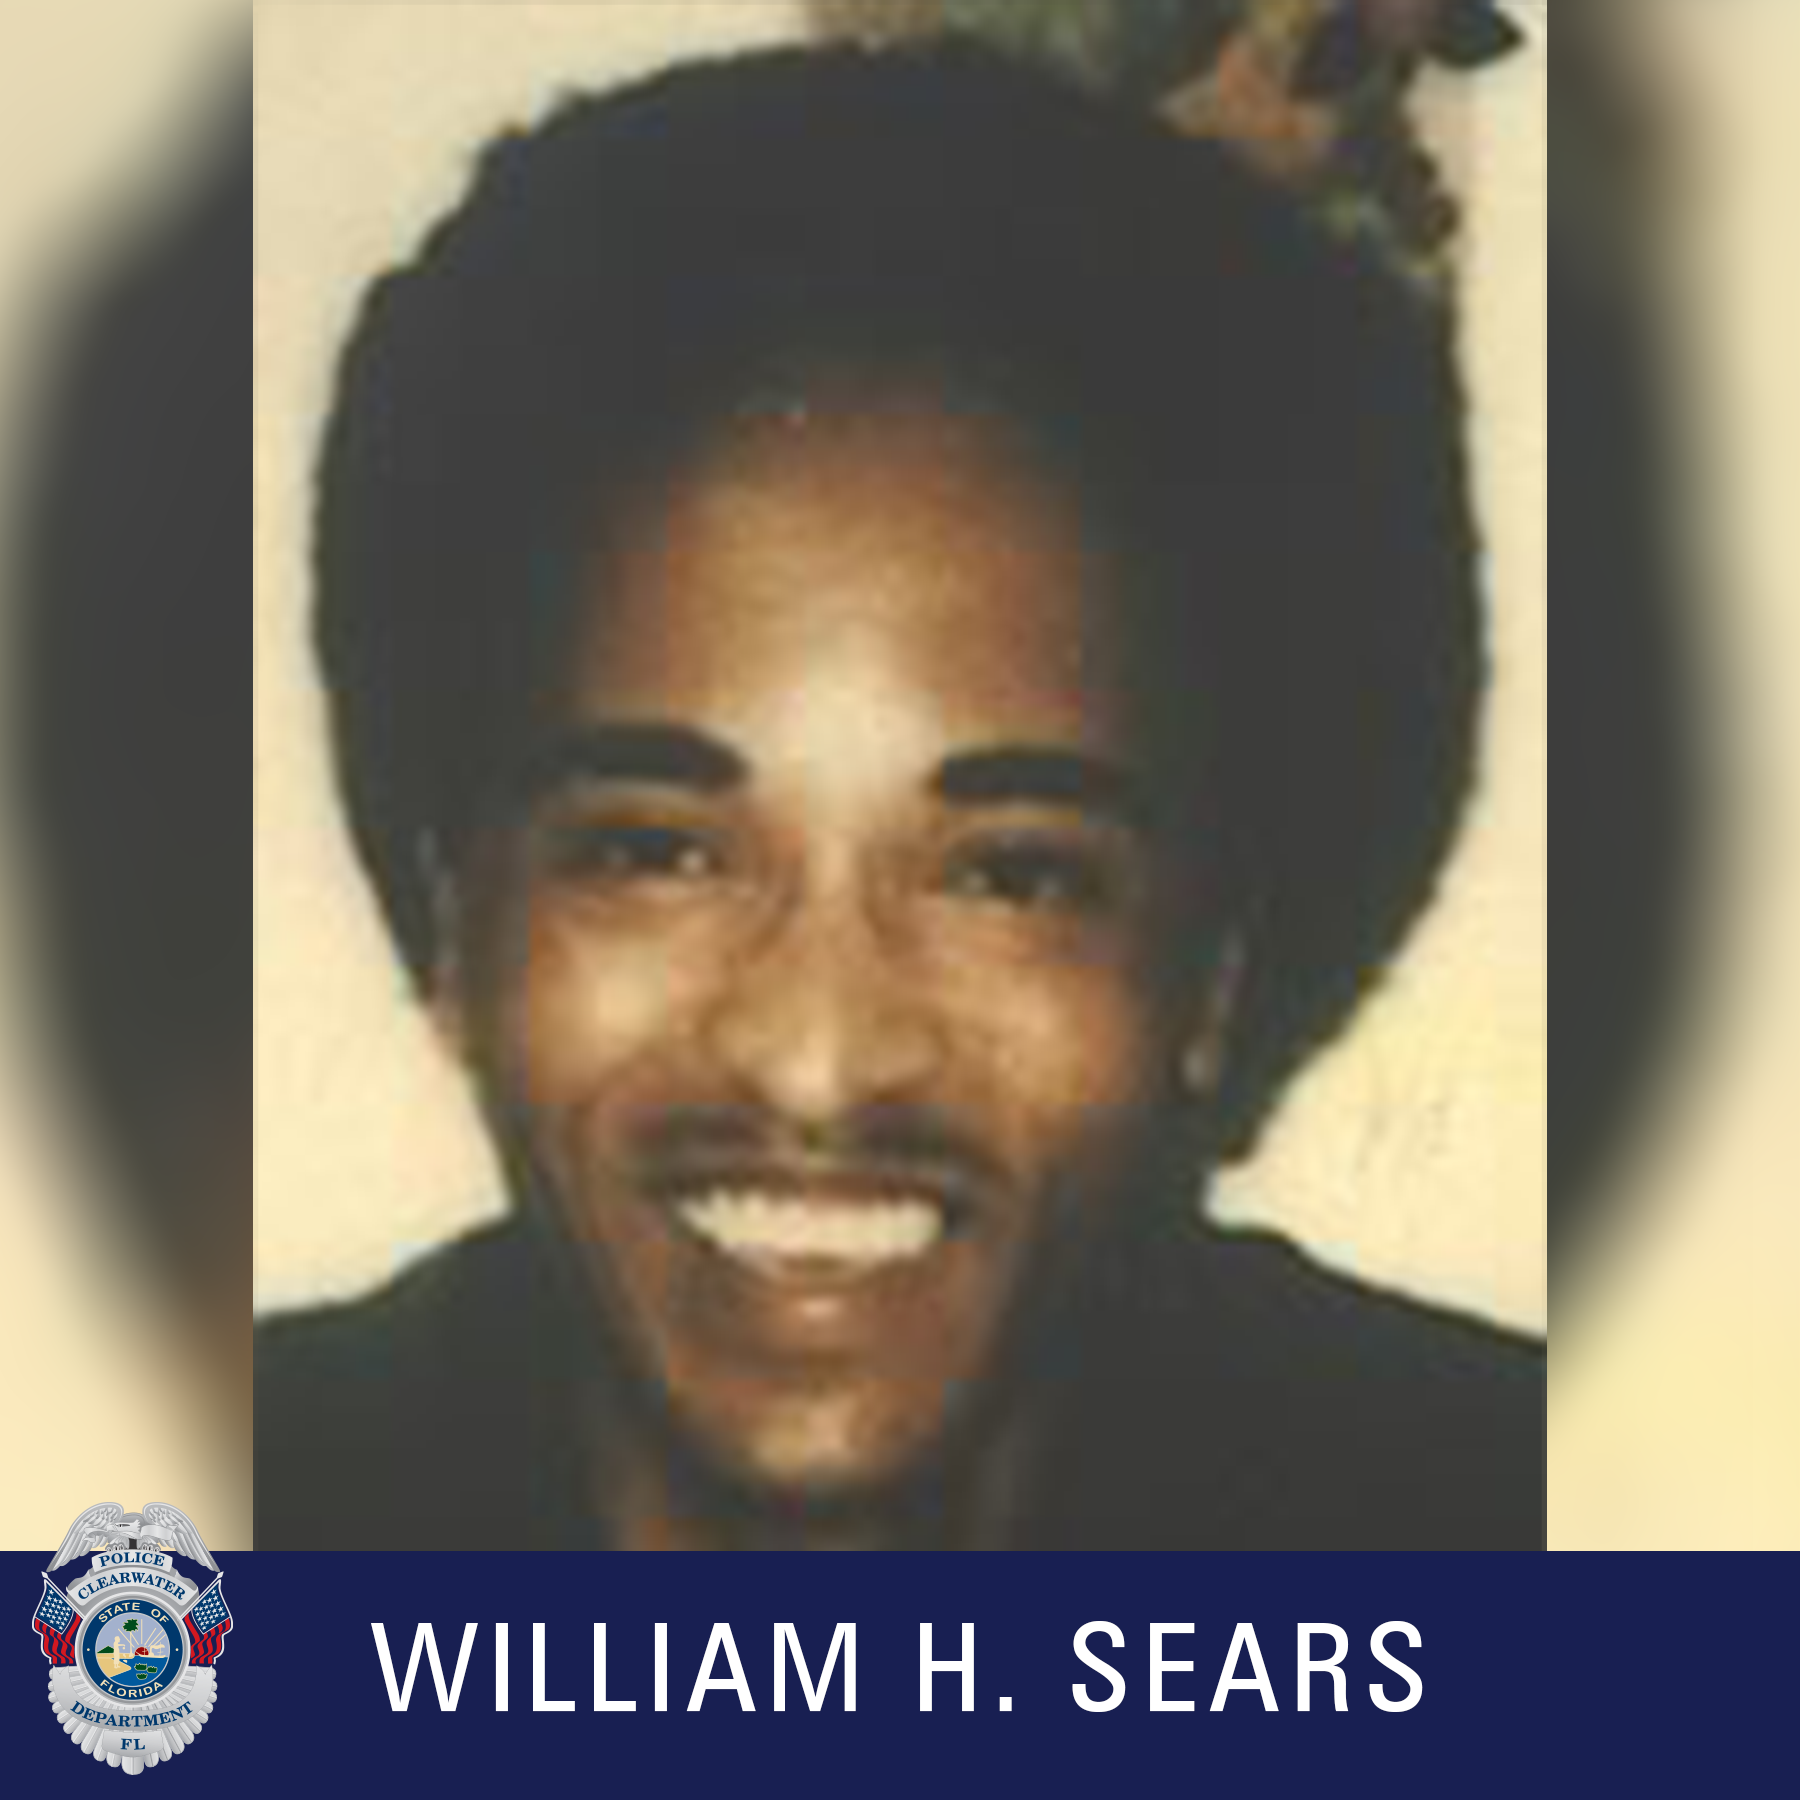 William H. Sears, Clearwater Police Department Shield, Male with black hair smiling